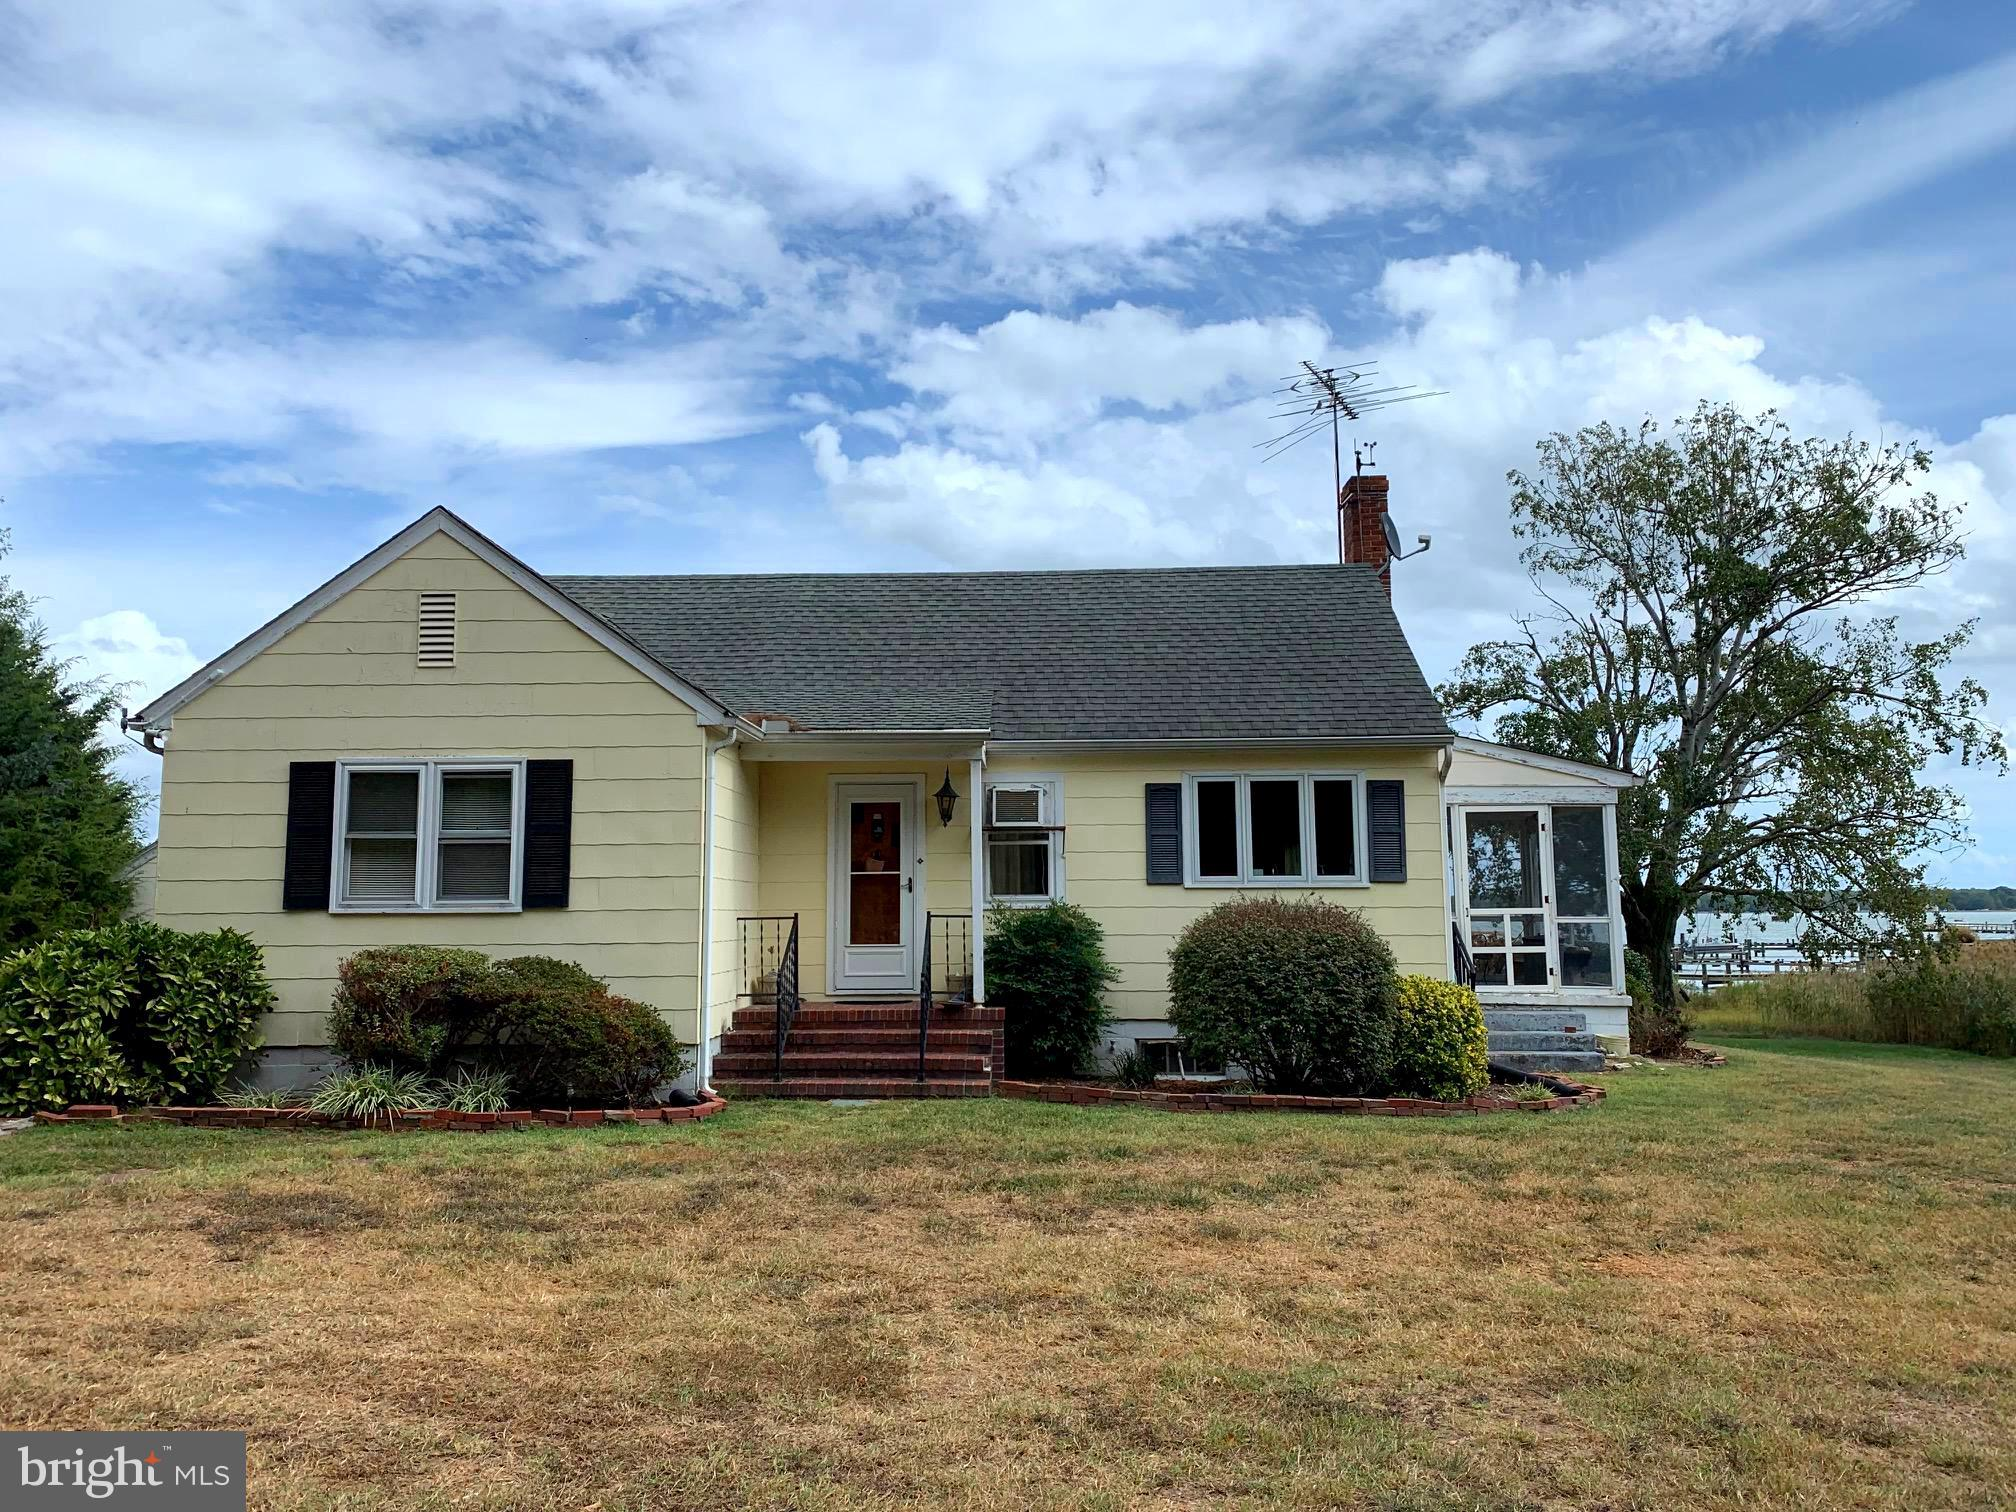 21876 ALBIE ROAD, SHERWOOD, MD 21665